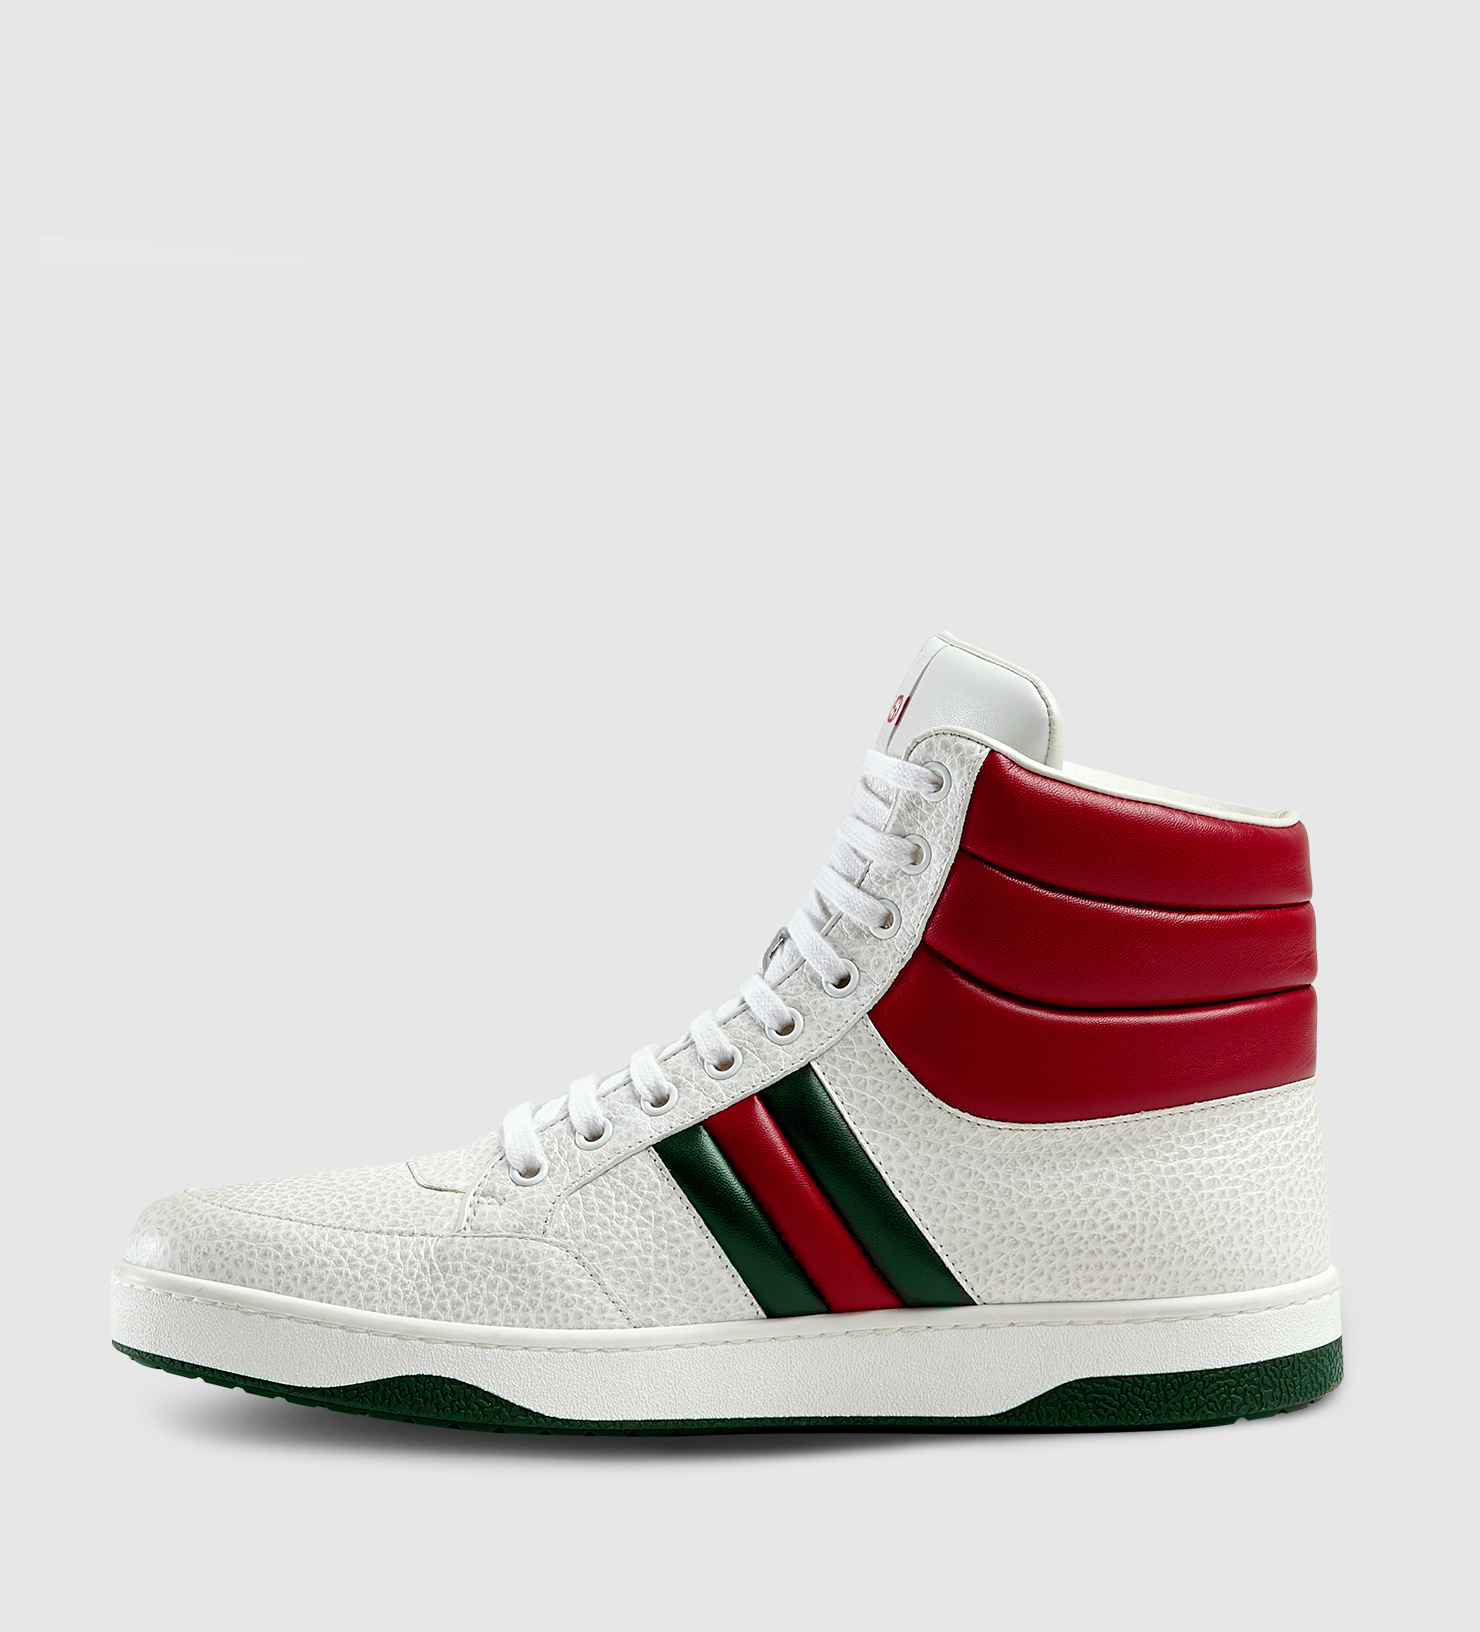 lyst gucci contrast padded leather high top sneaker in. Black Bedroom Furniture Sets. Home Design Ideas